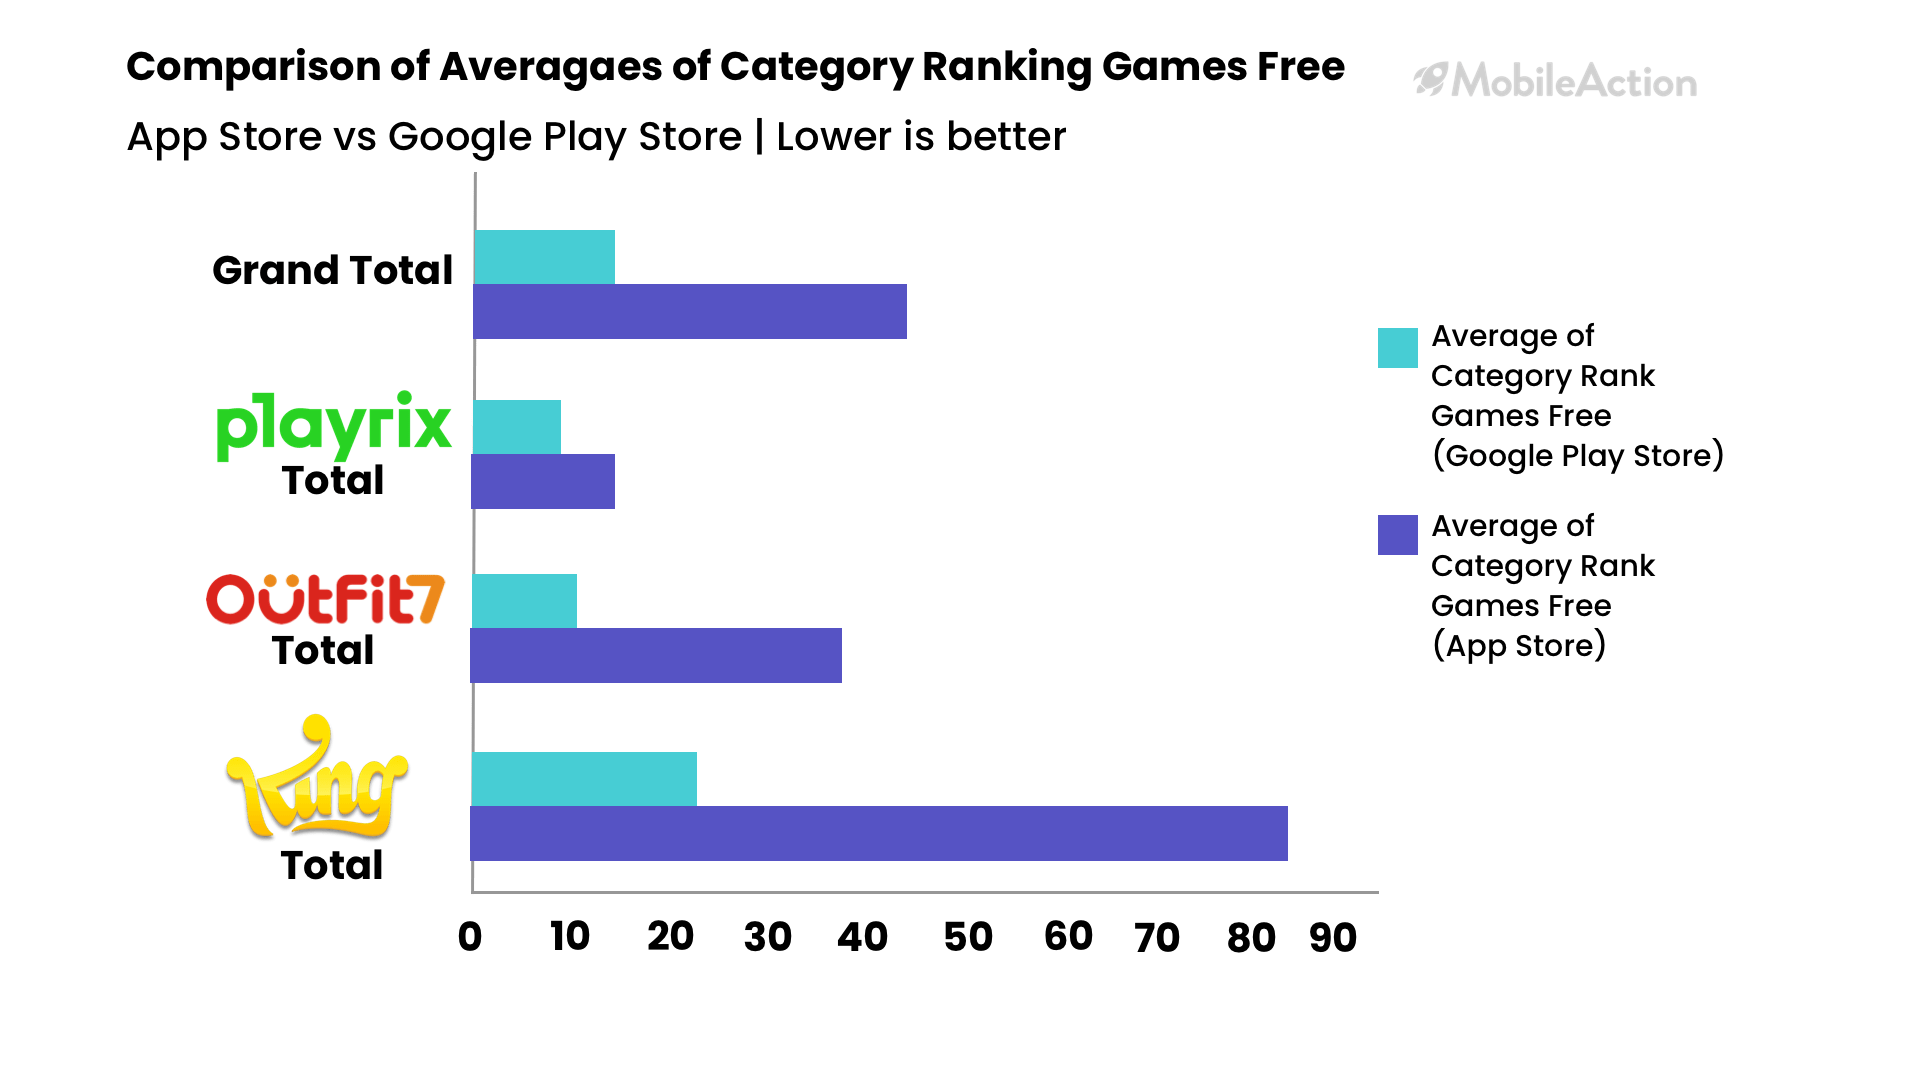 category rankings comparison